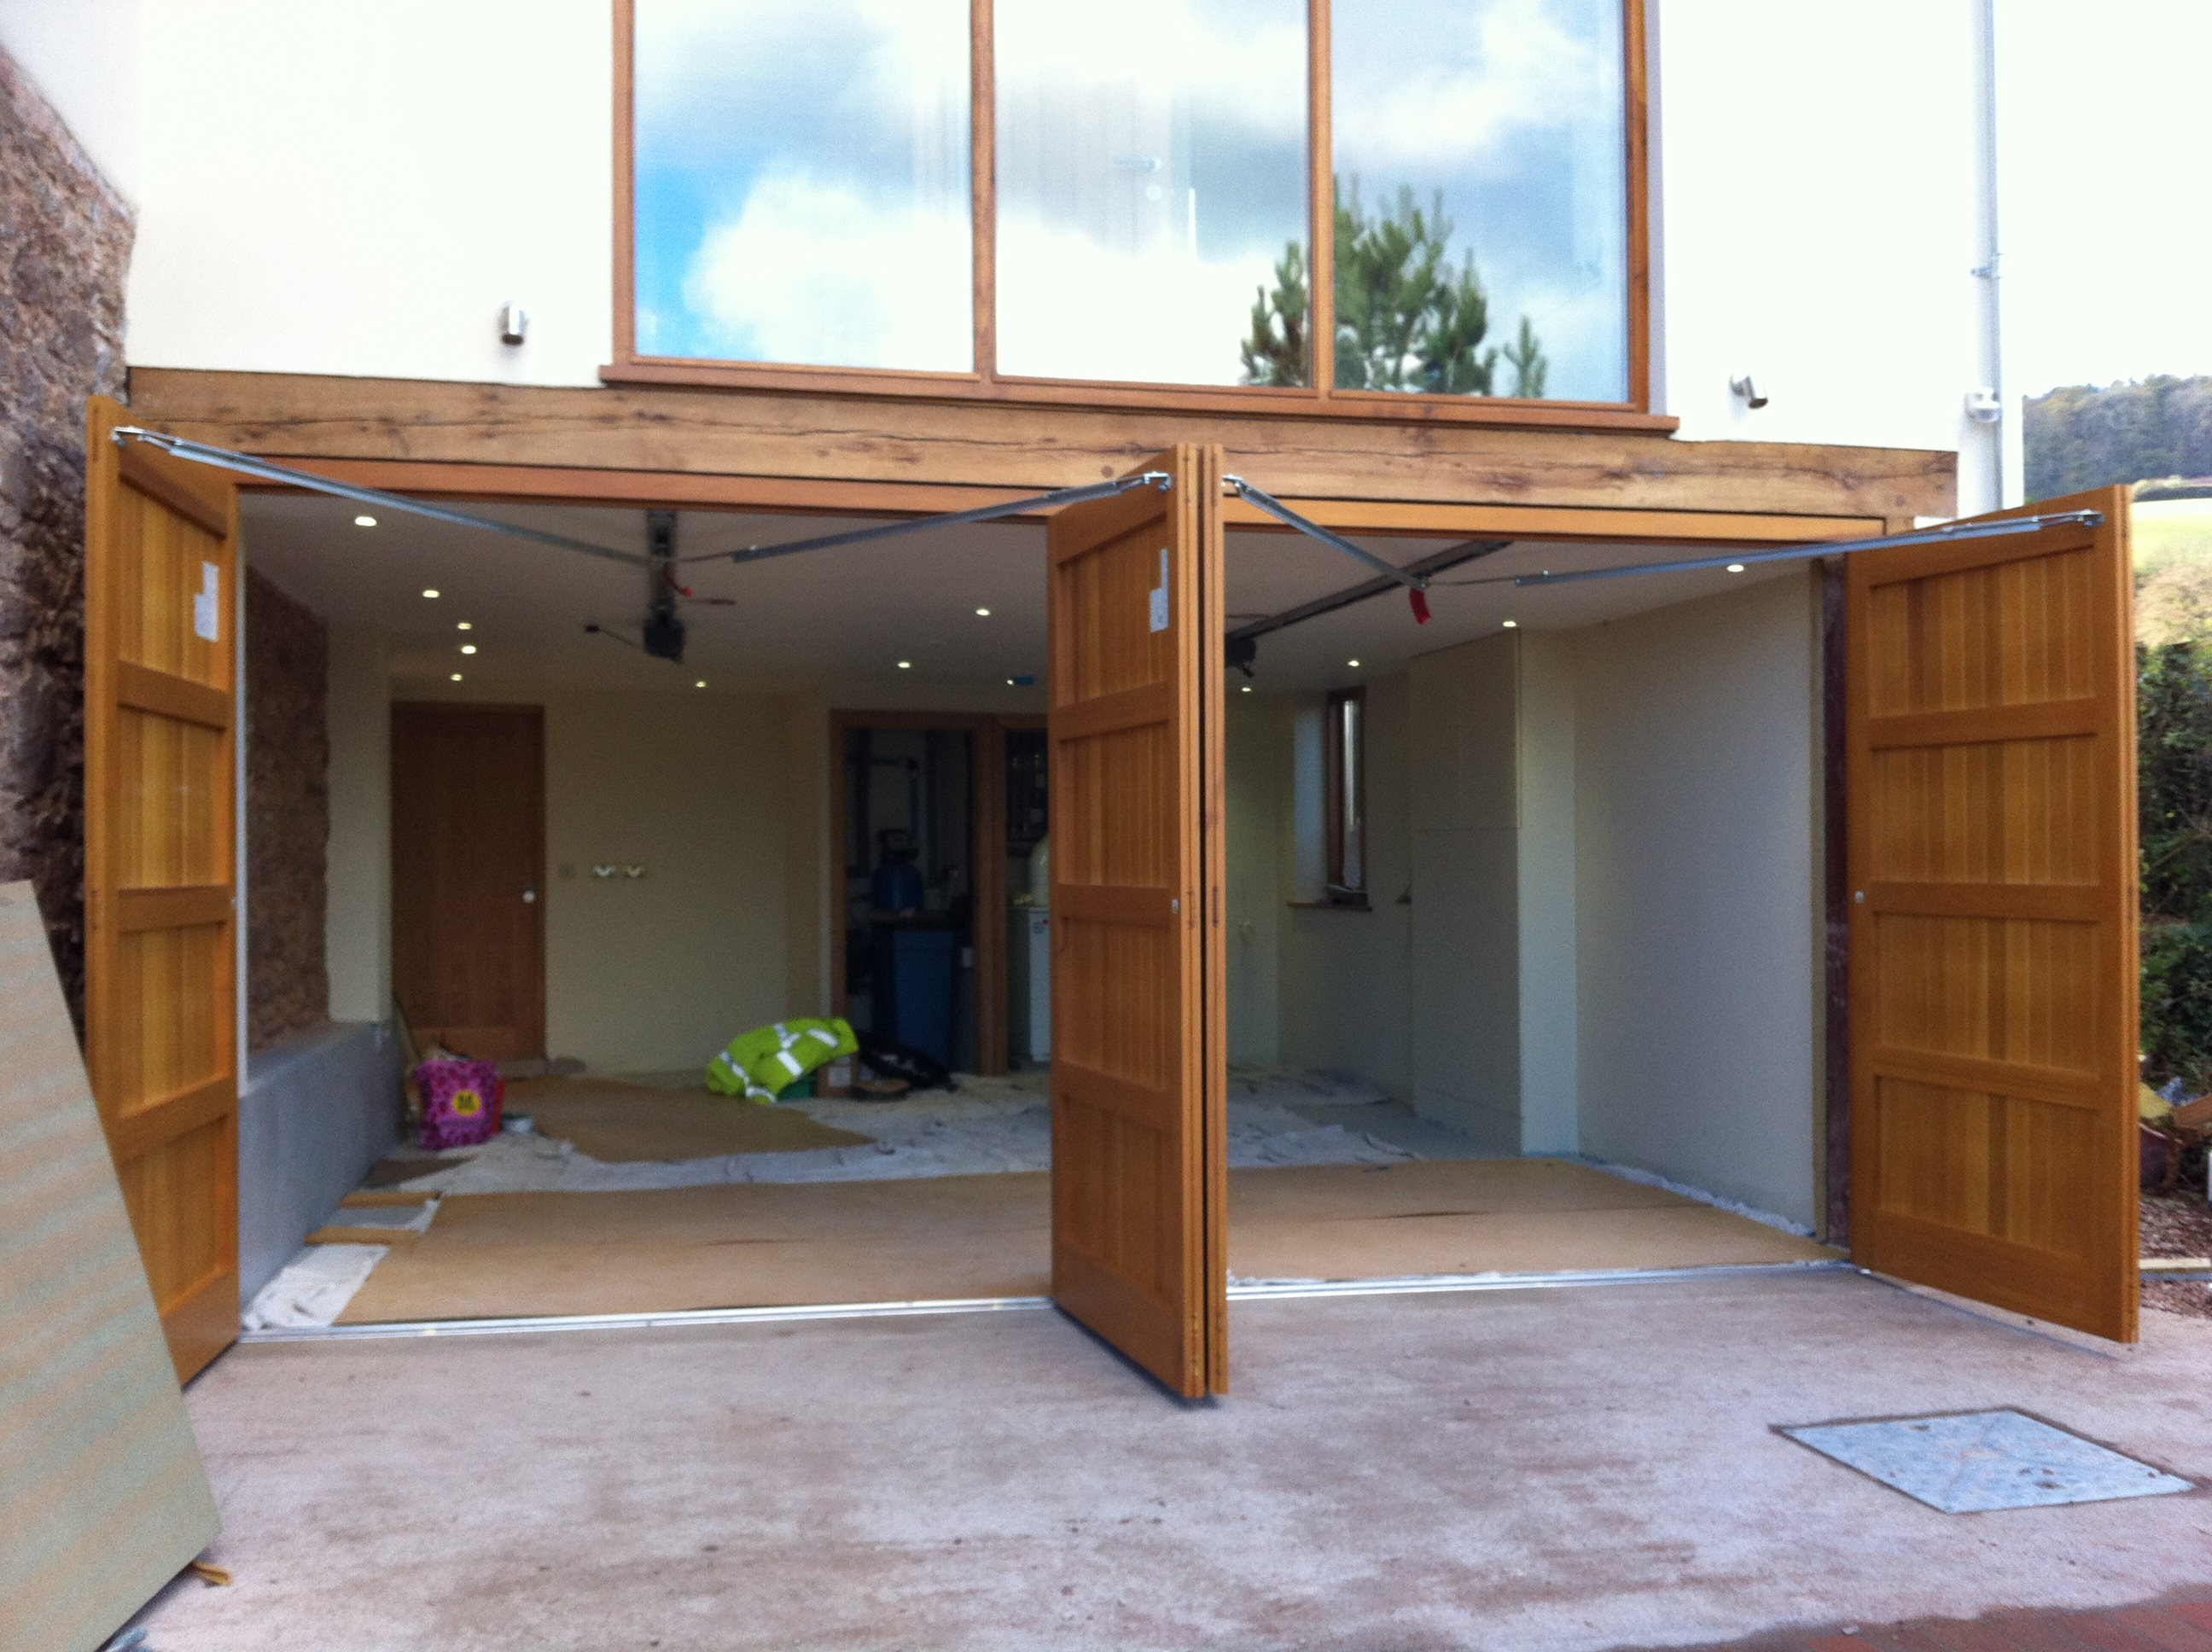 Le Meilleur Side Hinged Garage Door Installation Information And Ce Mois Ci